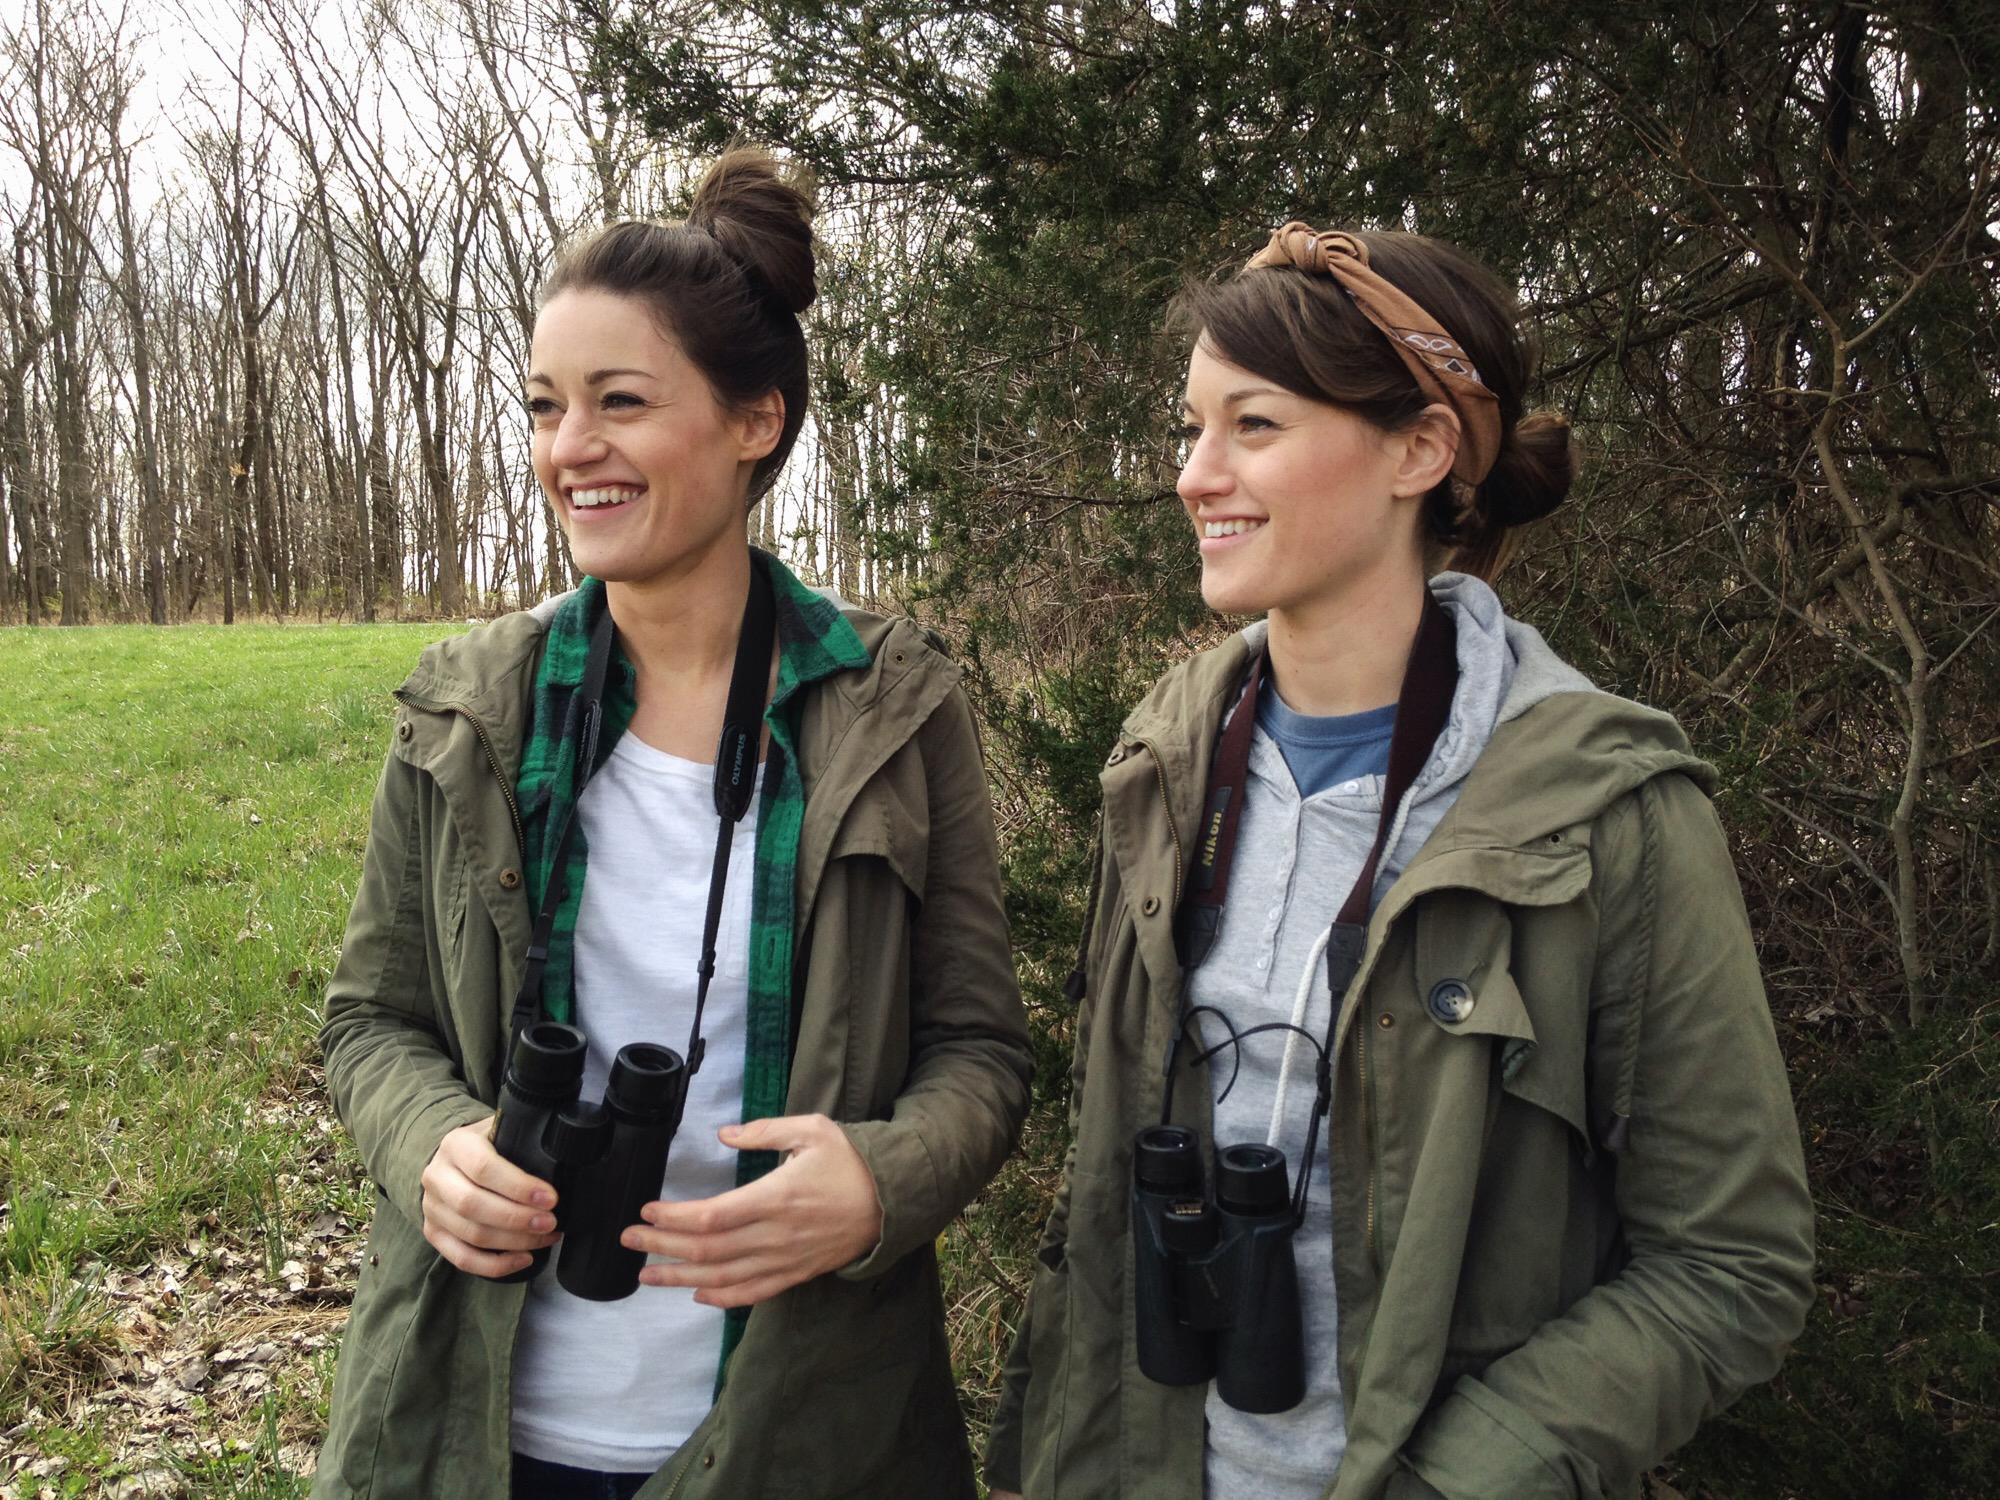 Artists Alex (L) and Shae Warnick birding in Indiana. They happen also to be twins.